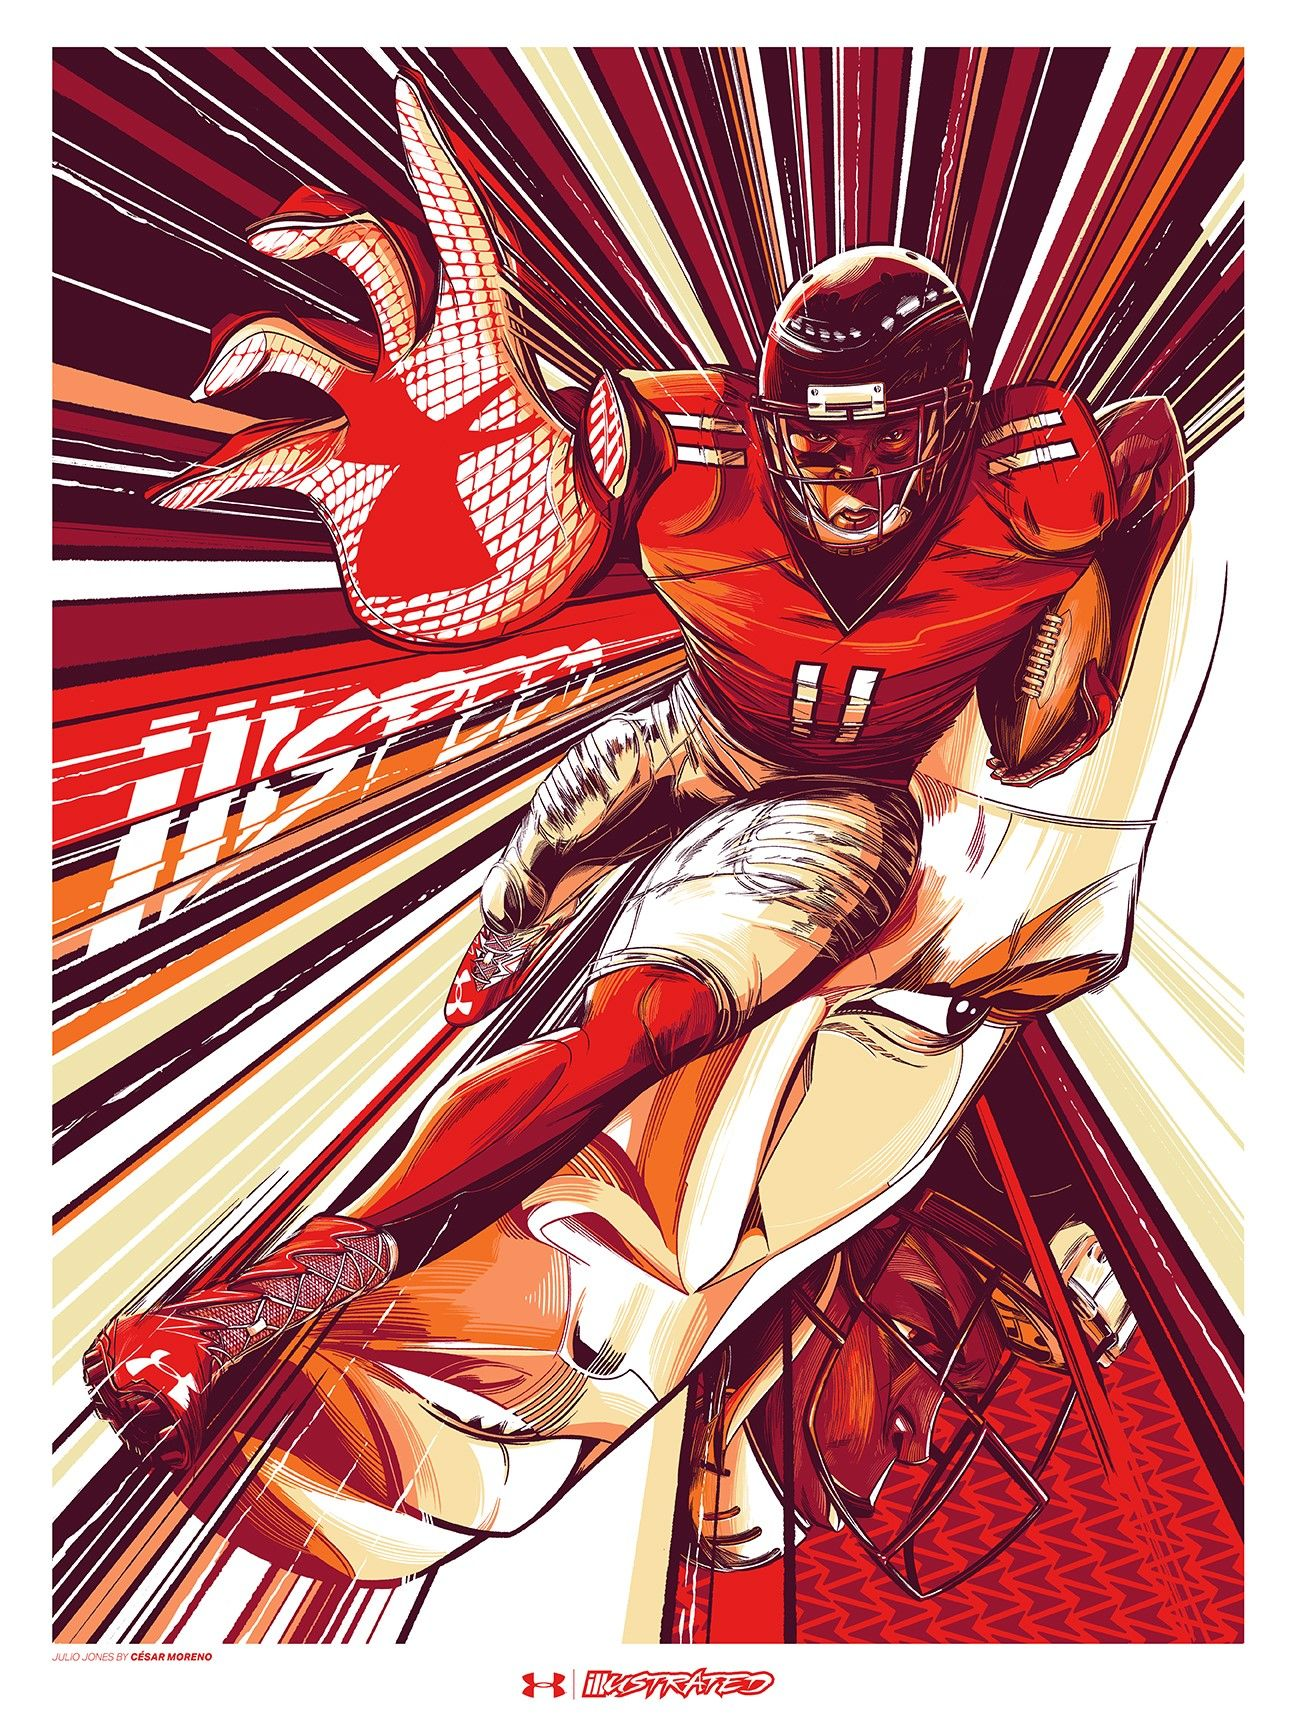 Under Armour Turned Its Nfl Athletes Into Comic Book Heros Julio Jones Atlanta Falcons Art Bike Illustration